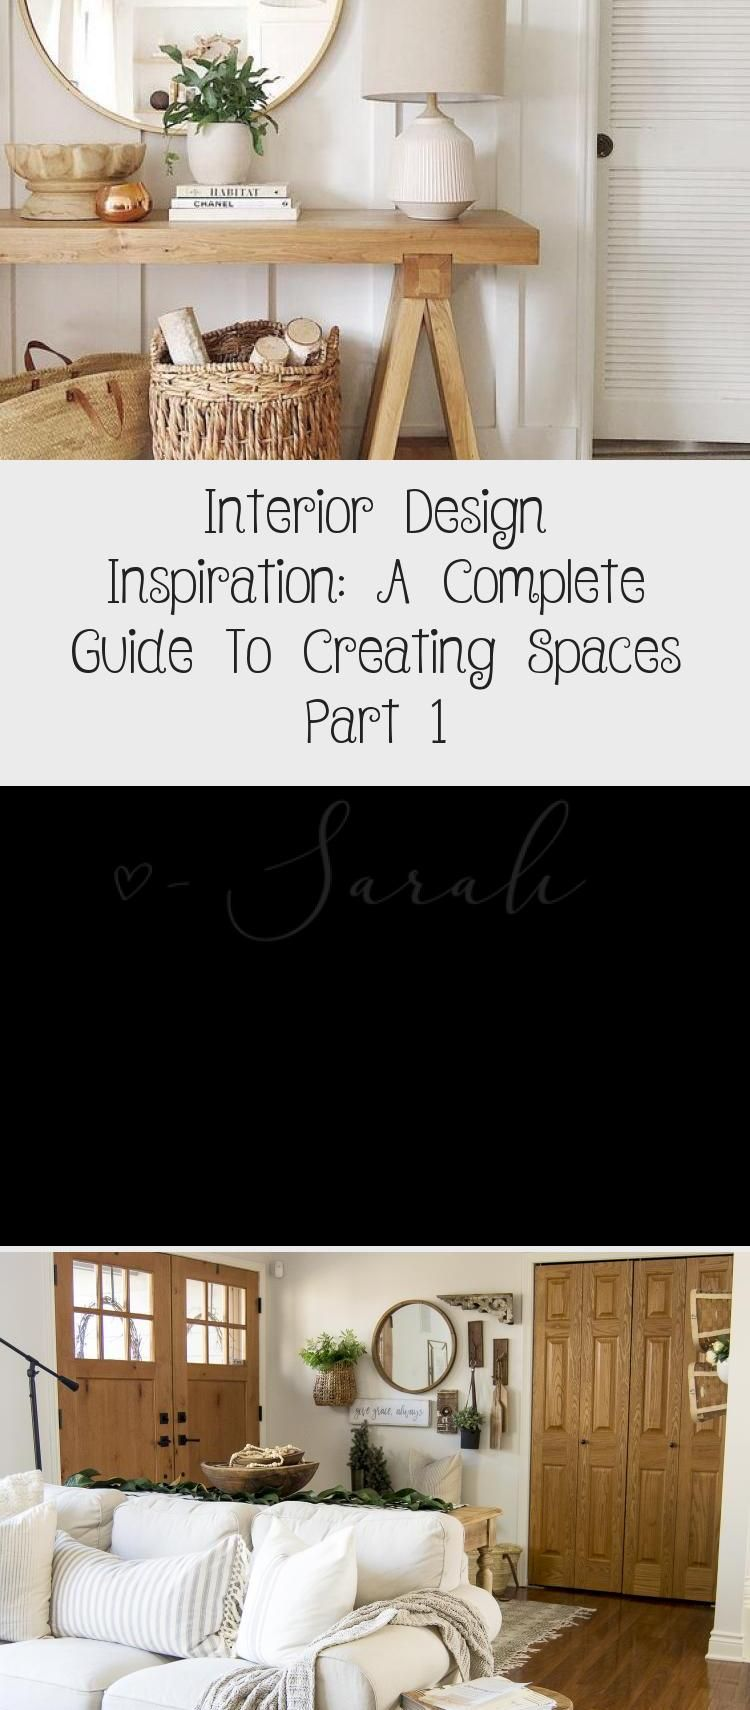 Do you struggle to take a space from dream to reality? Join me for a complete guide to creating spaces you love, starting with interior design inspiration! #fromhousetohaven #interiordesigninspiration #homedecor #interiordesign #Bohointeriordesign #Traditionalinteriordesign #interiordesignWood #interiordesignApartment #interiordesignWallpaper